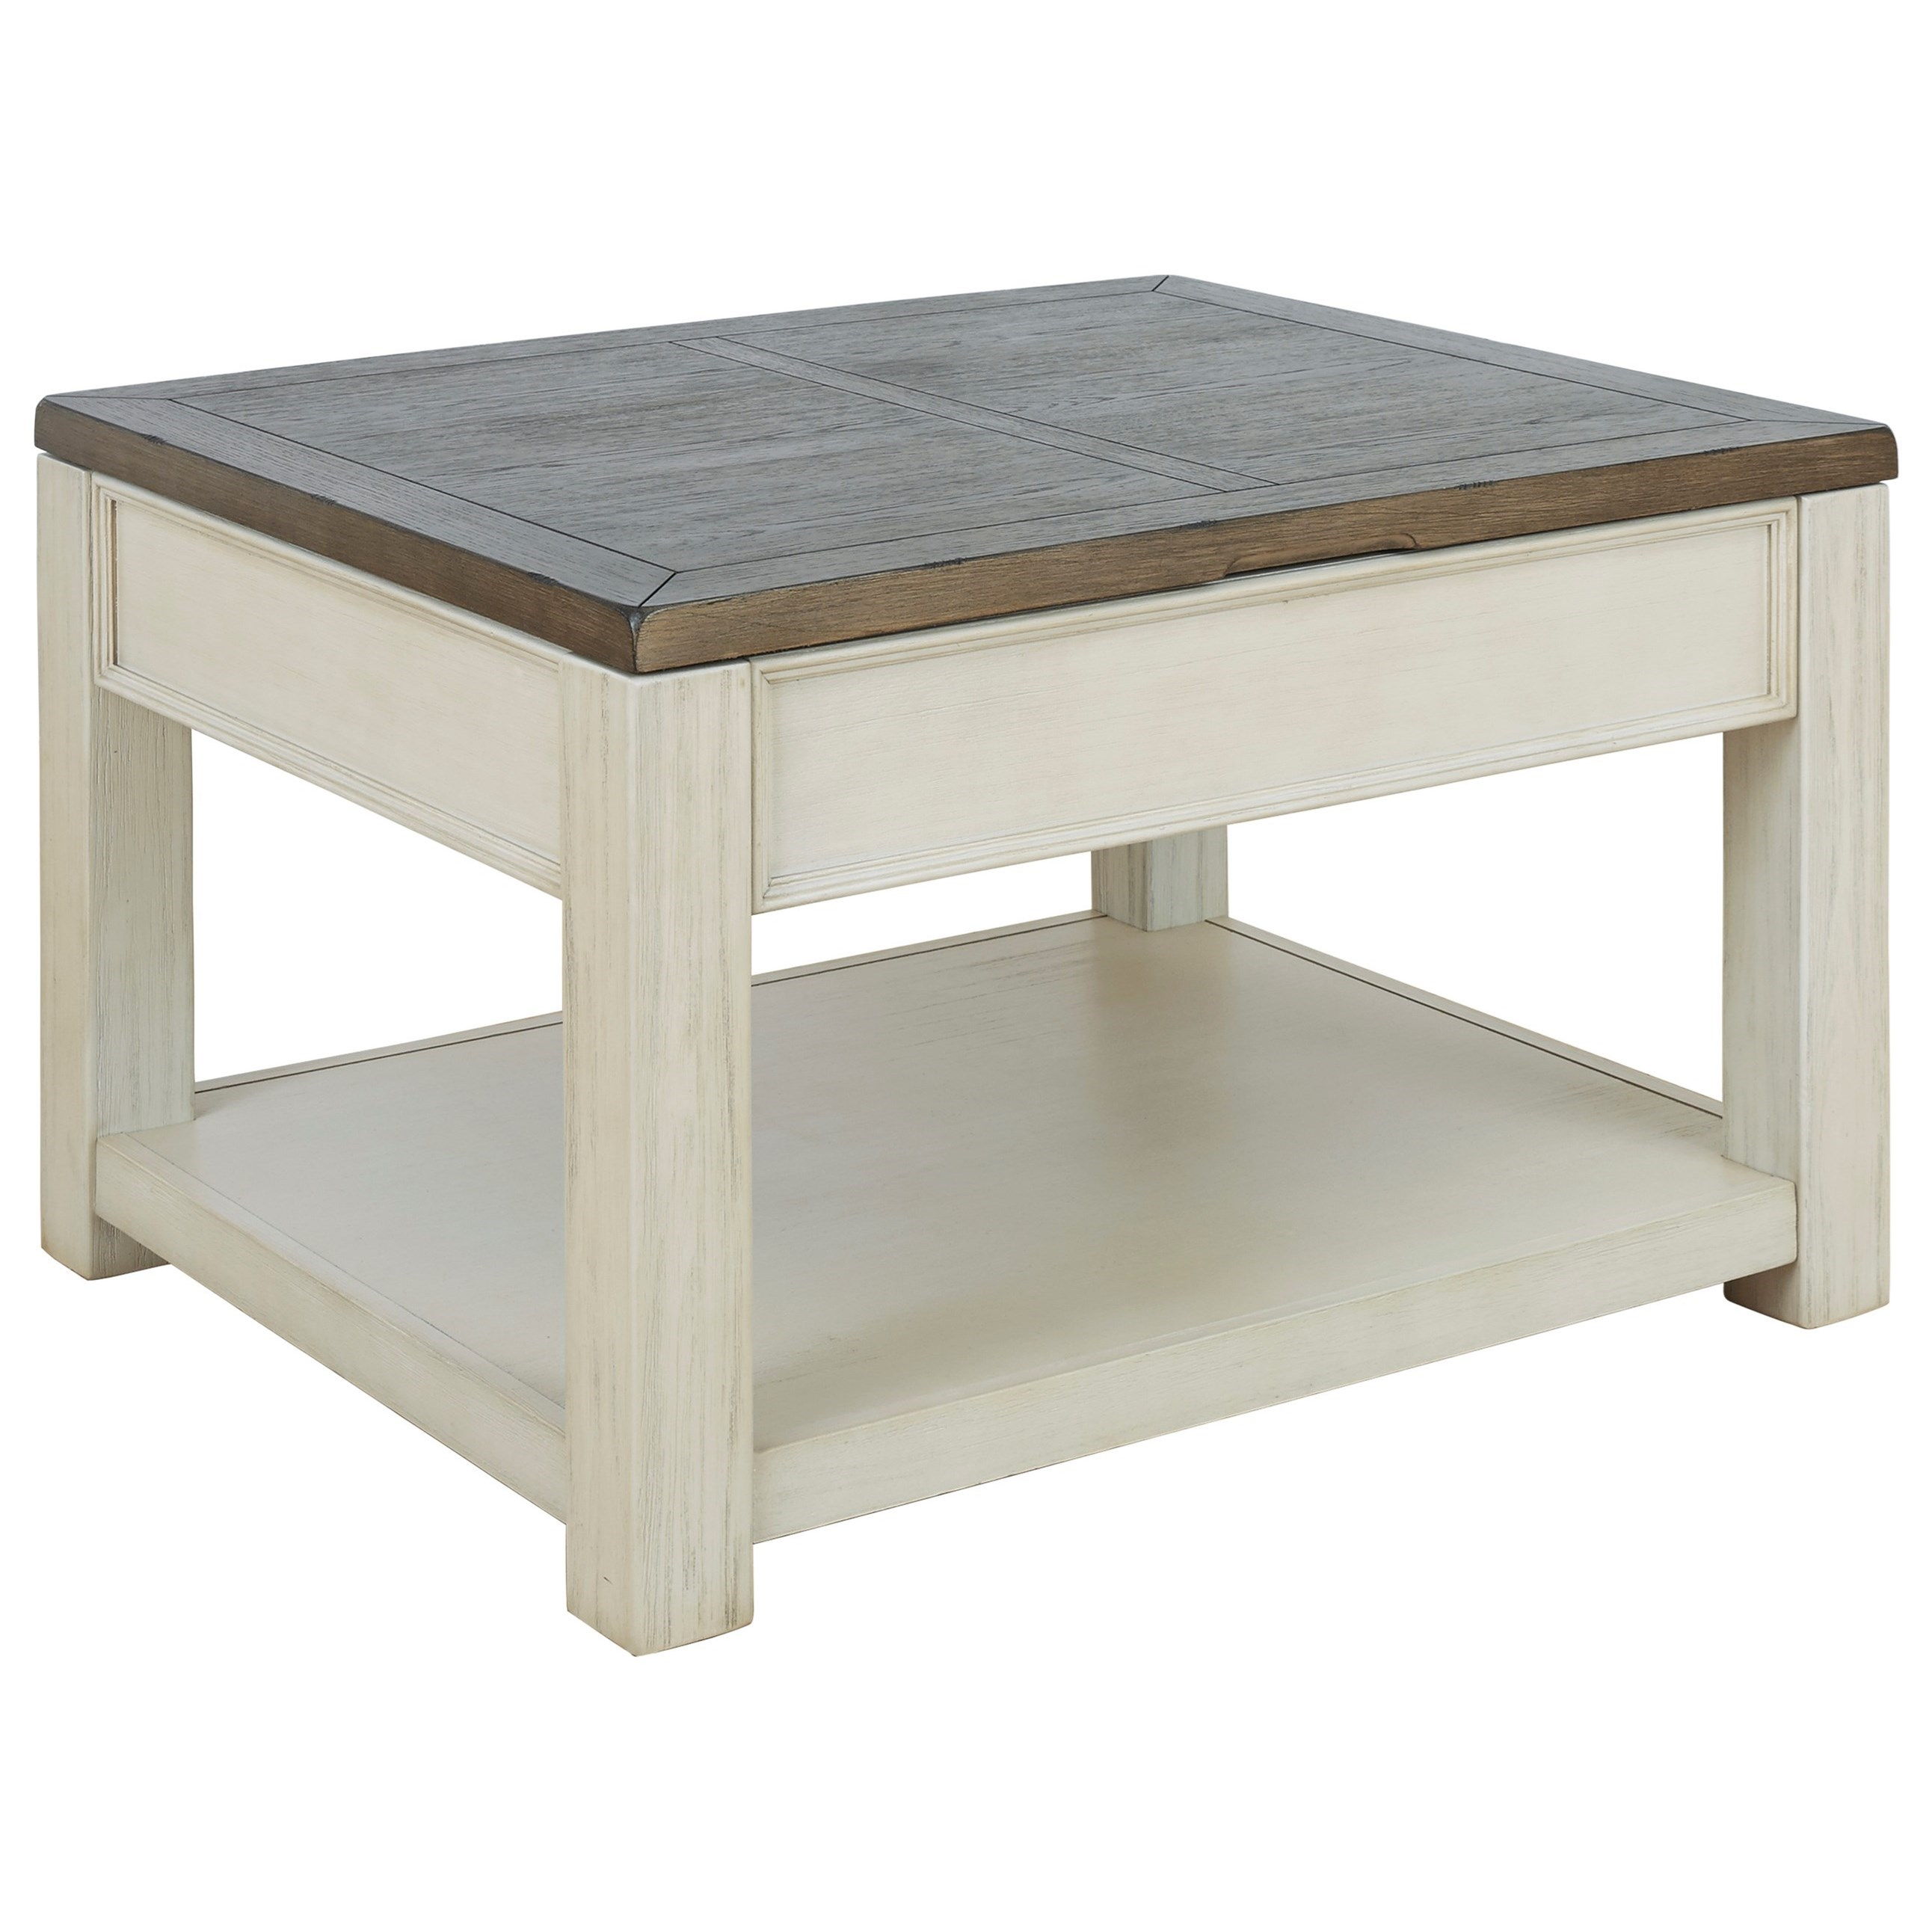 Bolanburg Rectangular Lift Top Cocktail Table by Ashley (Signature Design) at Johnny Janosik